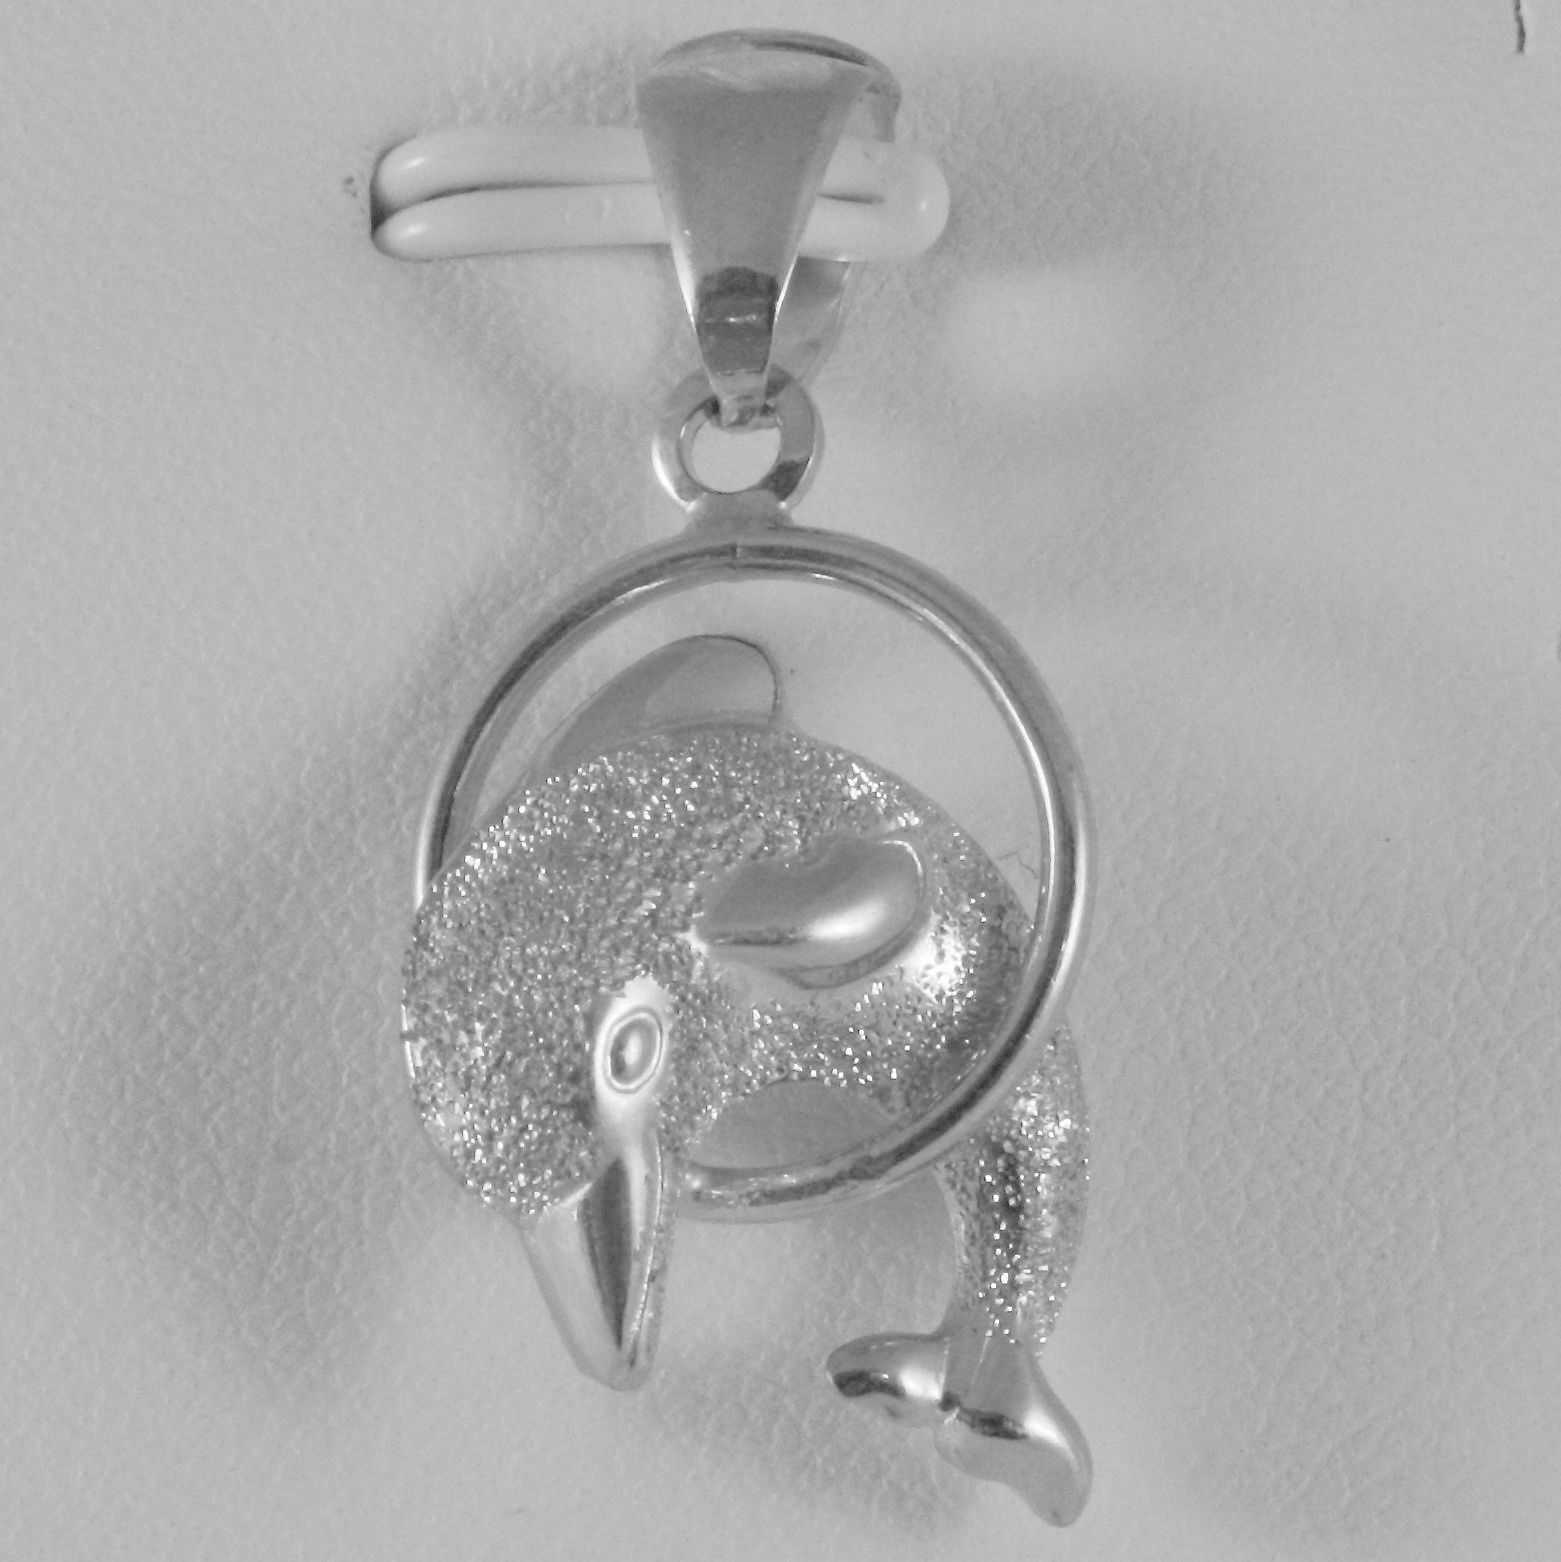 18K WHITE GOLD ROUNDED DOLPHIN CHARM, PENDANT, SHINY AND SATIN, MADE IN ITALY